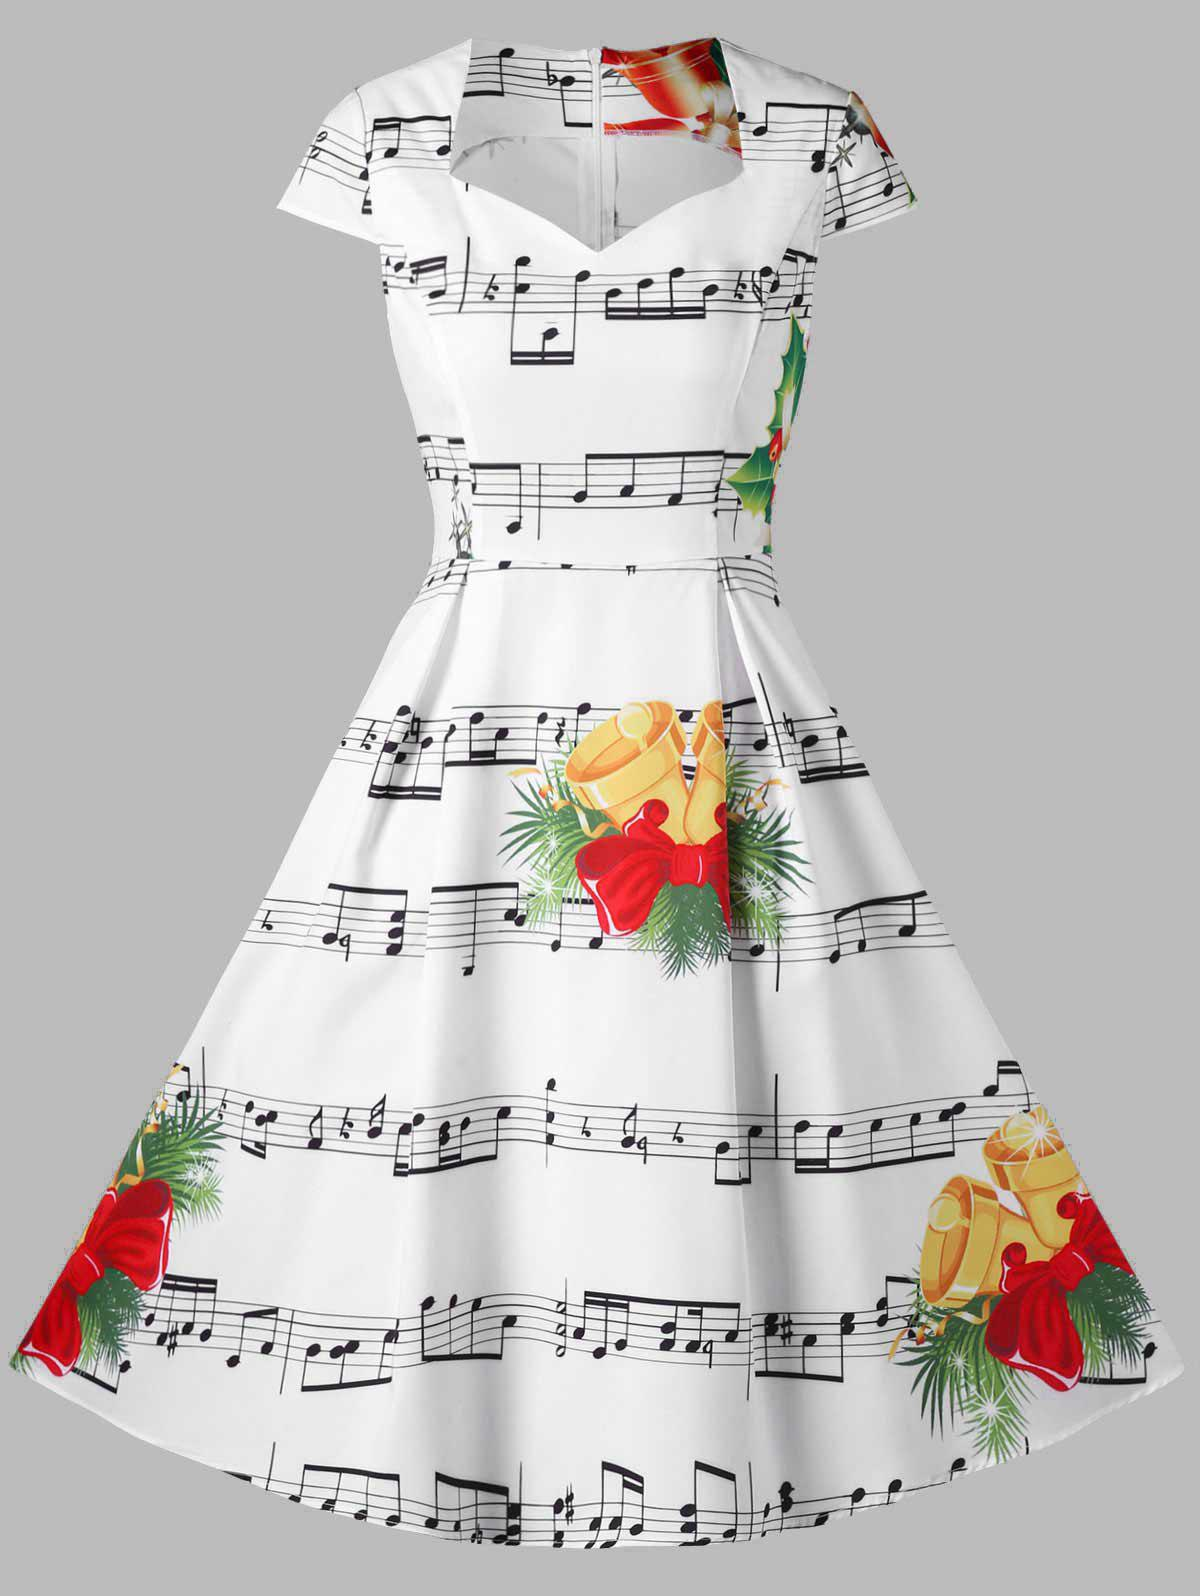 Christmas Bell and Music Note Print Dress 230009304